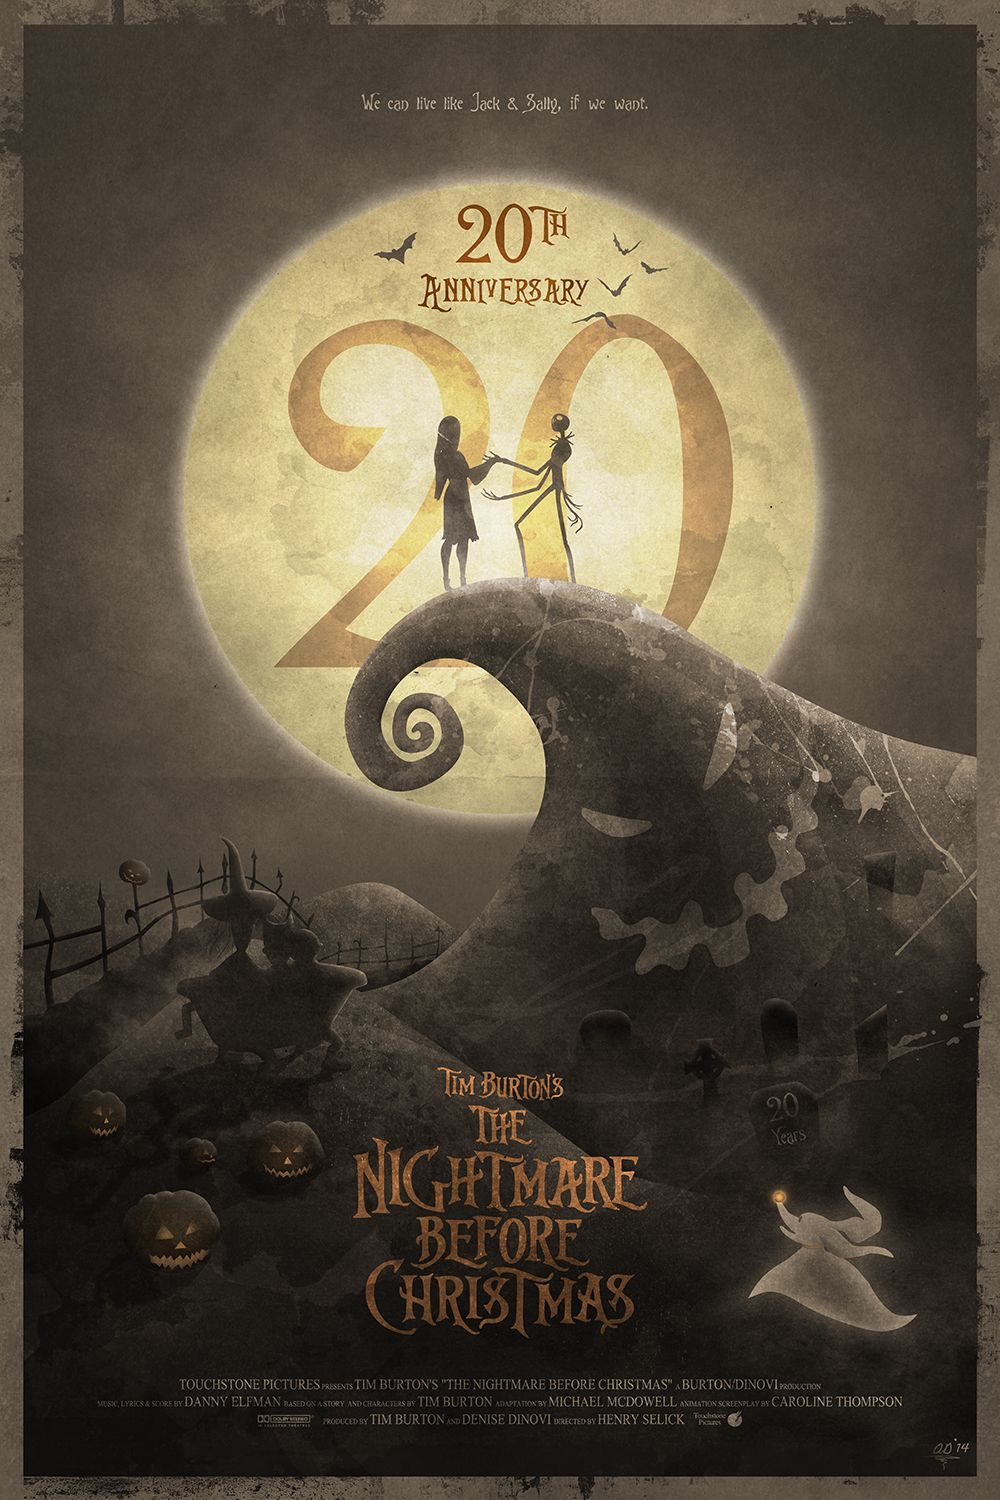 Pin by DeAnna on Art | Nightmare Before Christmas, Nightmare before ...